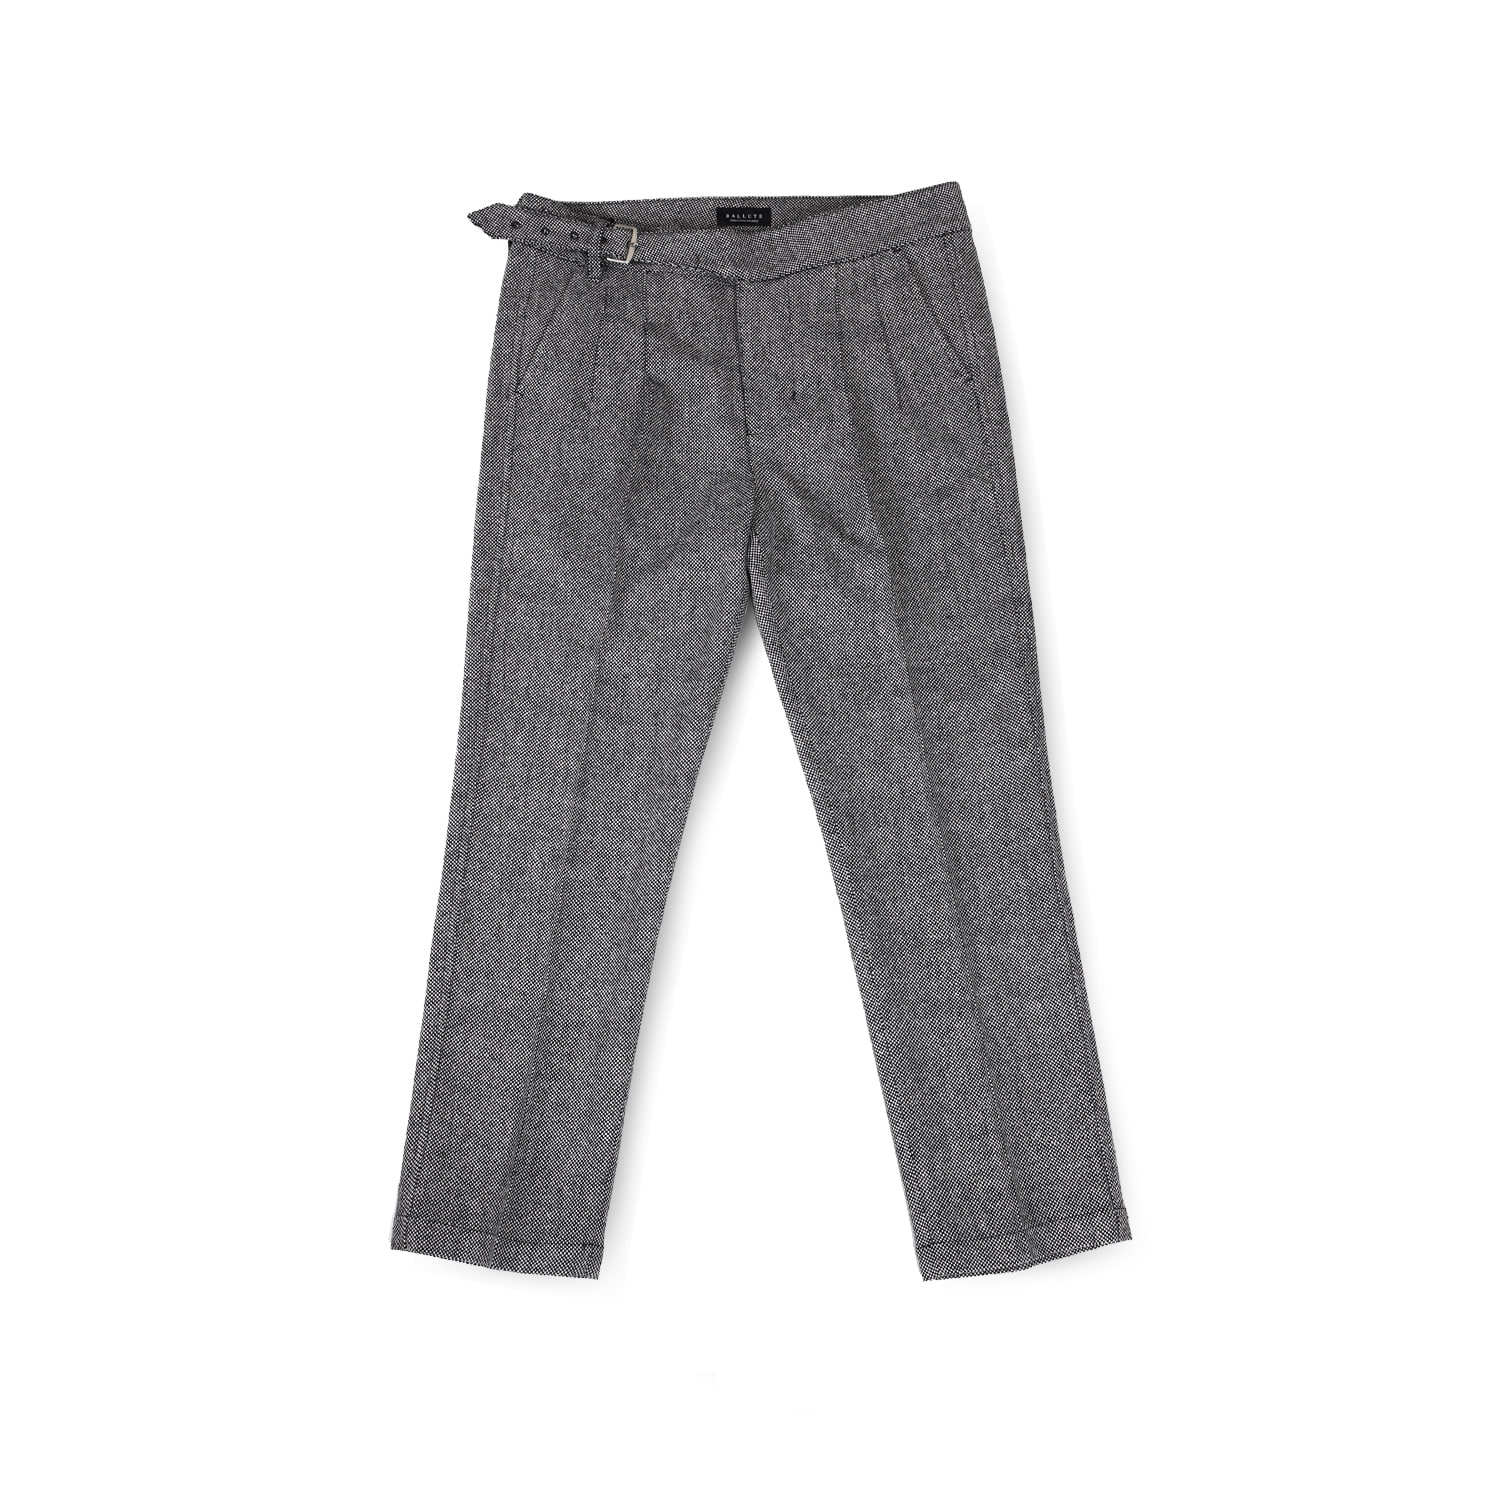 MAGAZINE SINGLE GURKHA PANTS (GREY WOOL)